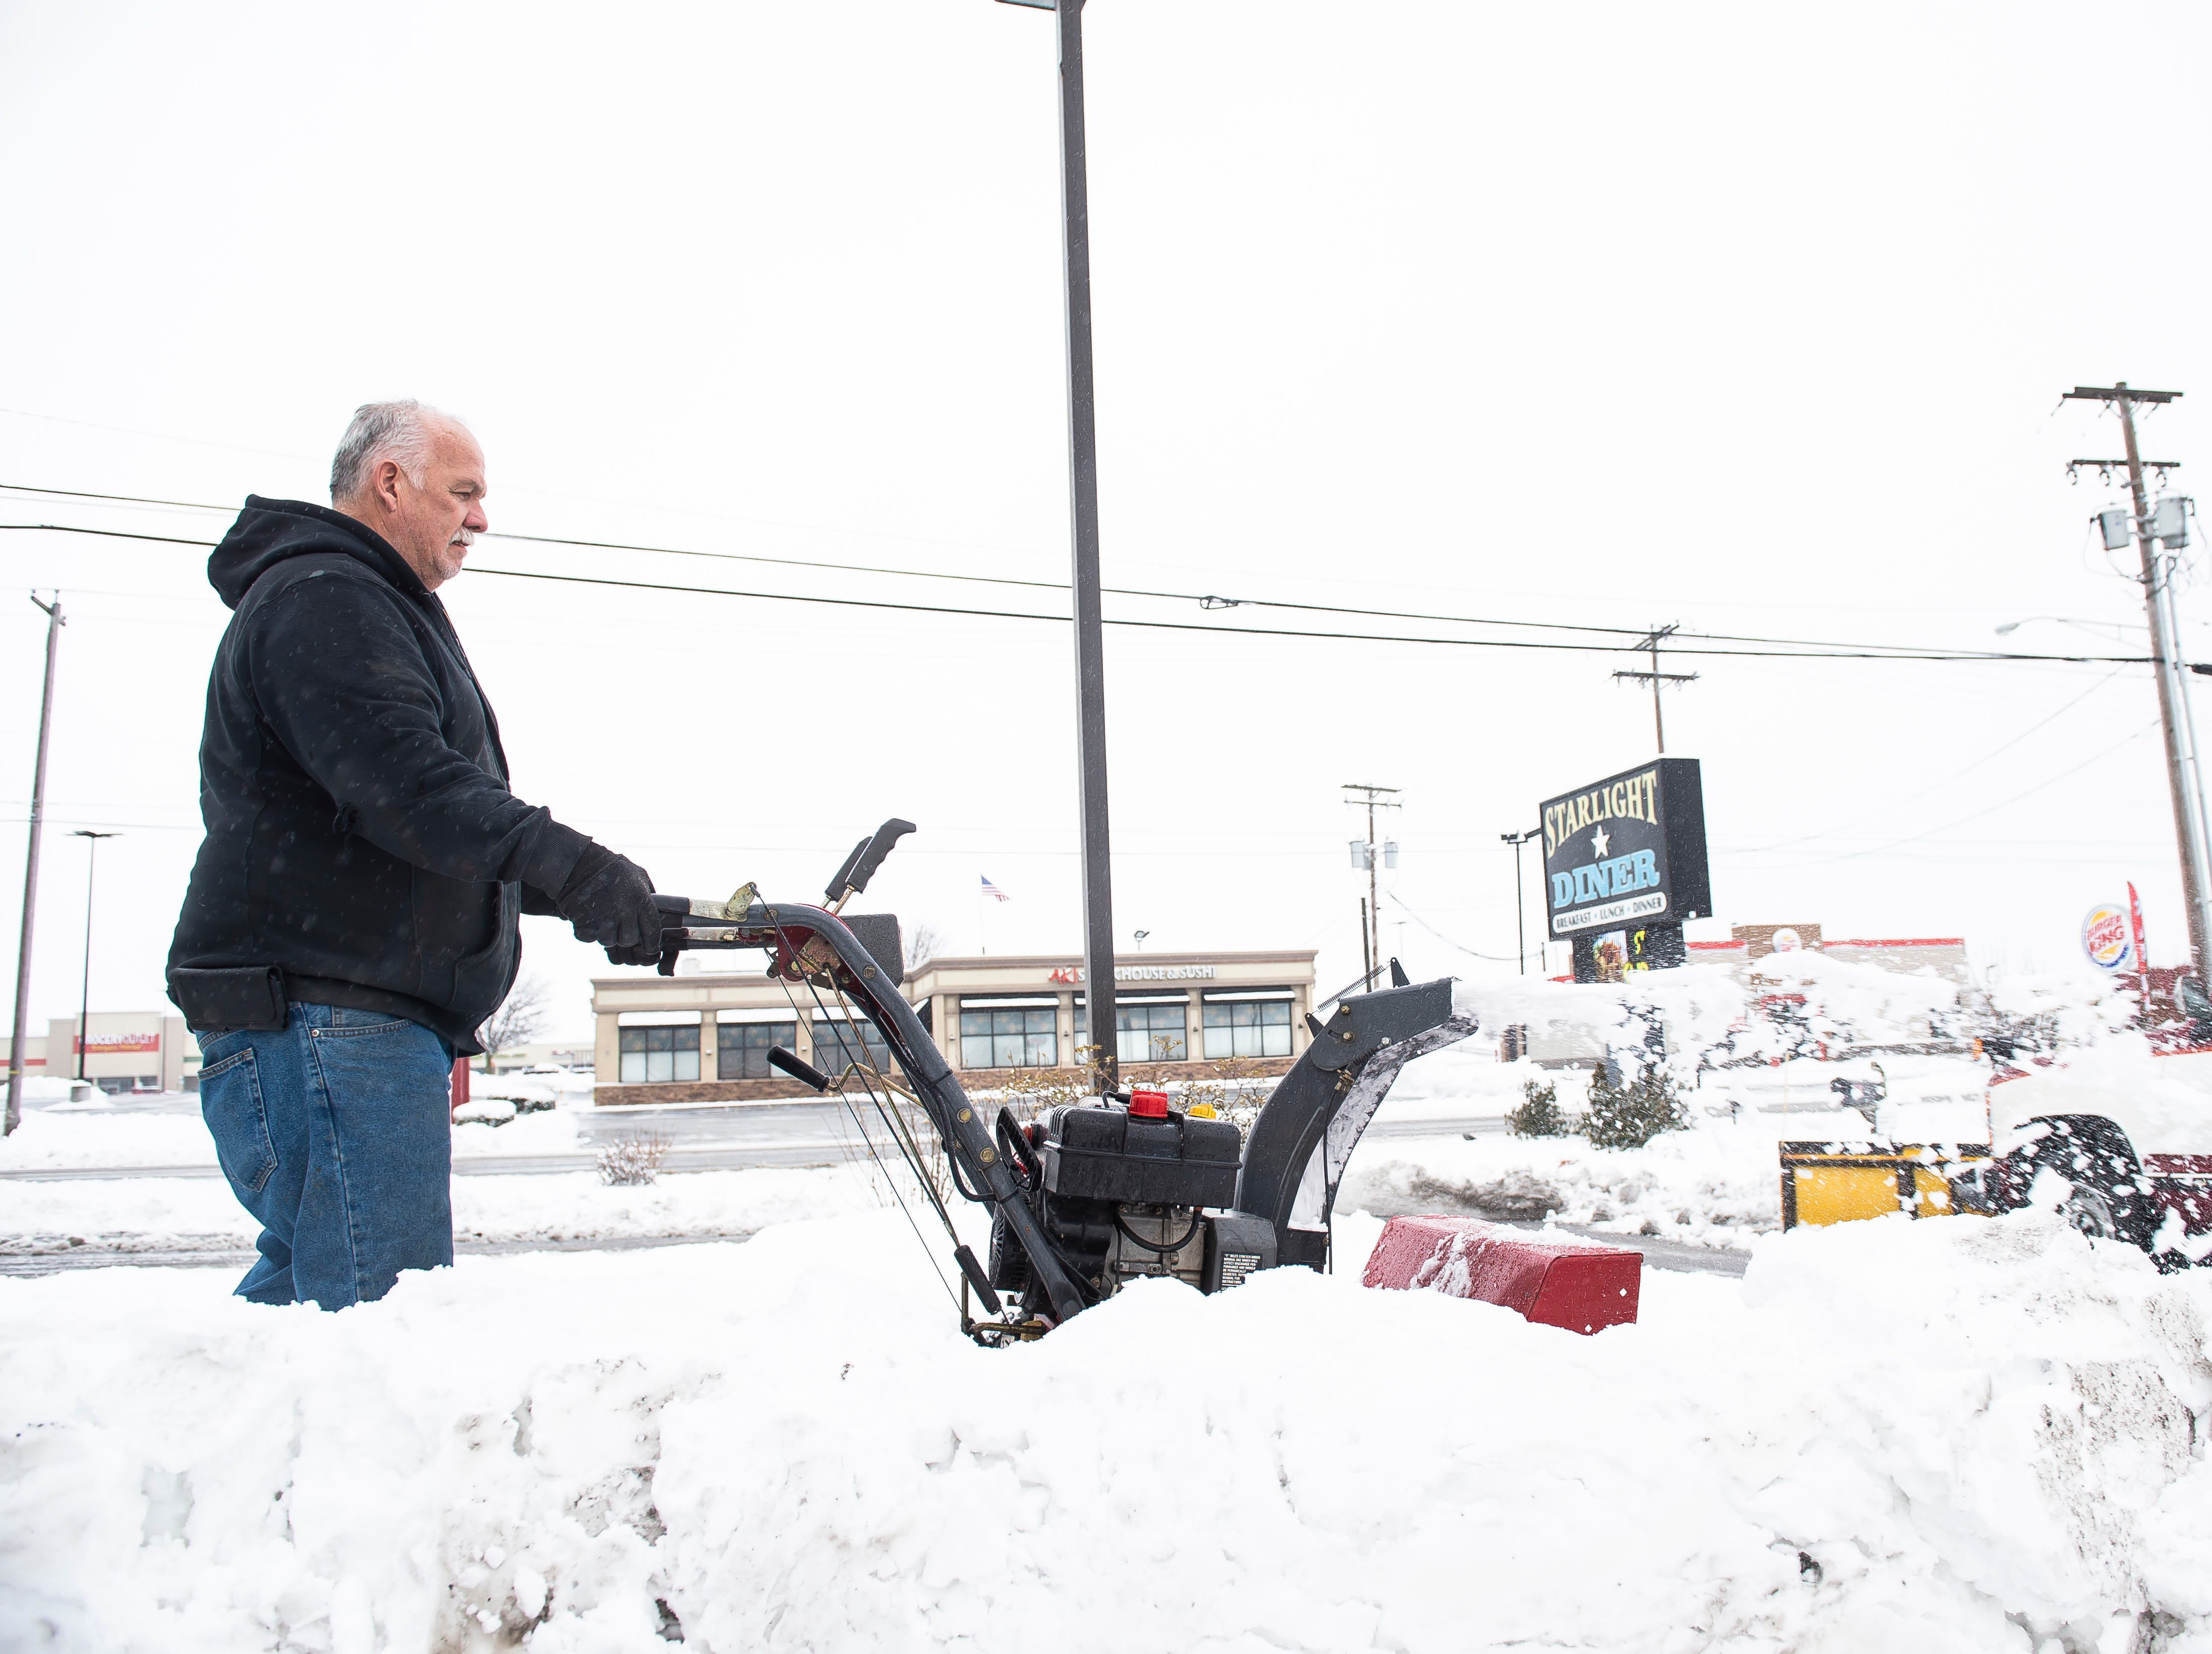 Dan Curry Sr. uses a snow blower to clear a sidewalk at the Starlight Diner as his son, Dan Curry Jr., plows snow in a pickup truck. Curry Sr. said he has been in the snow removal business for 25 years.